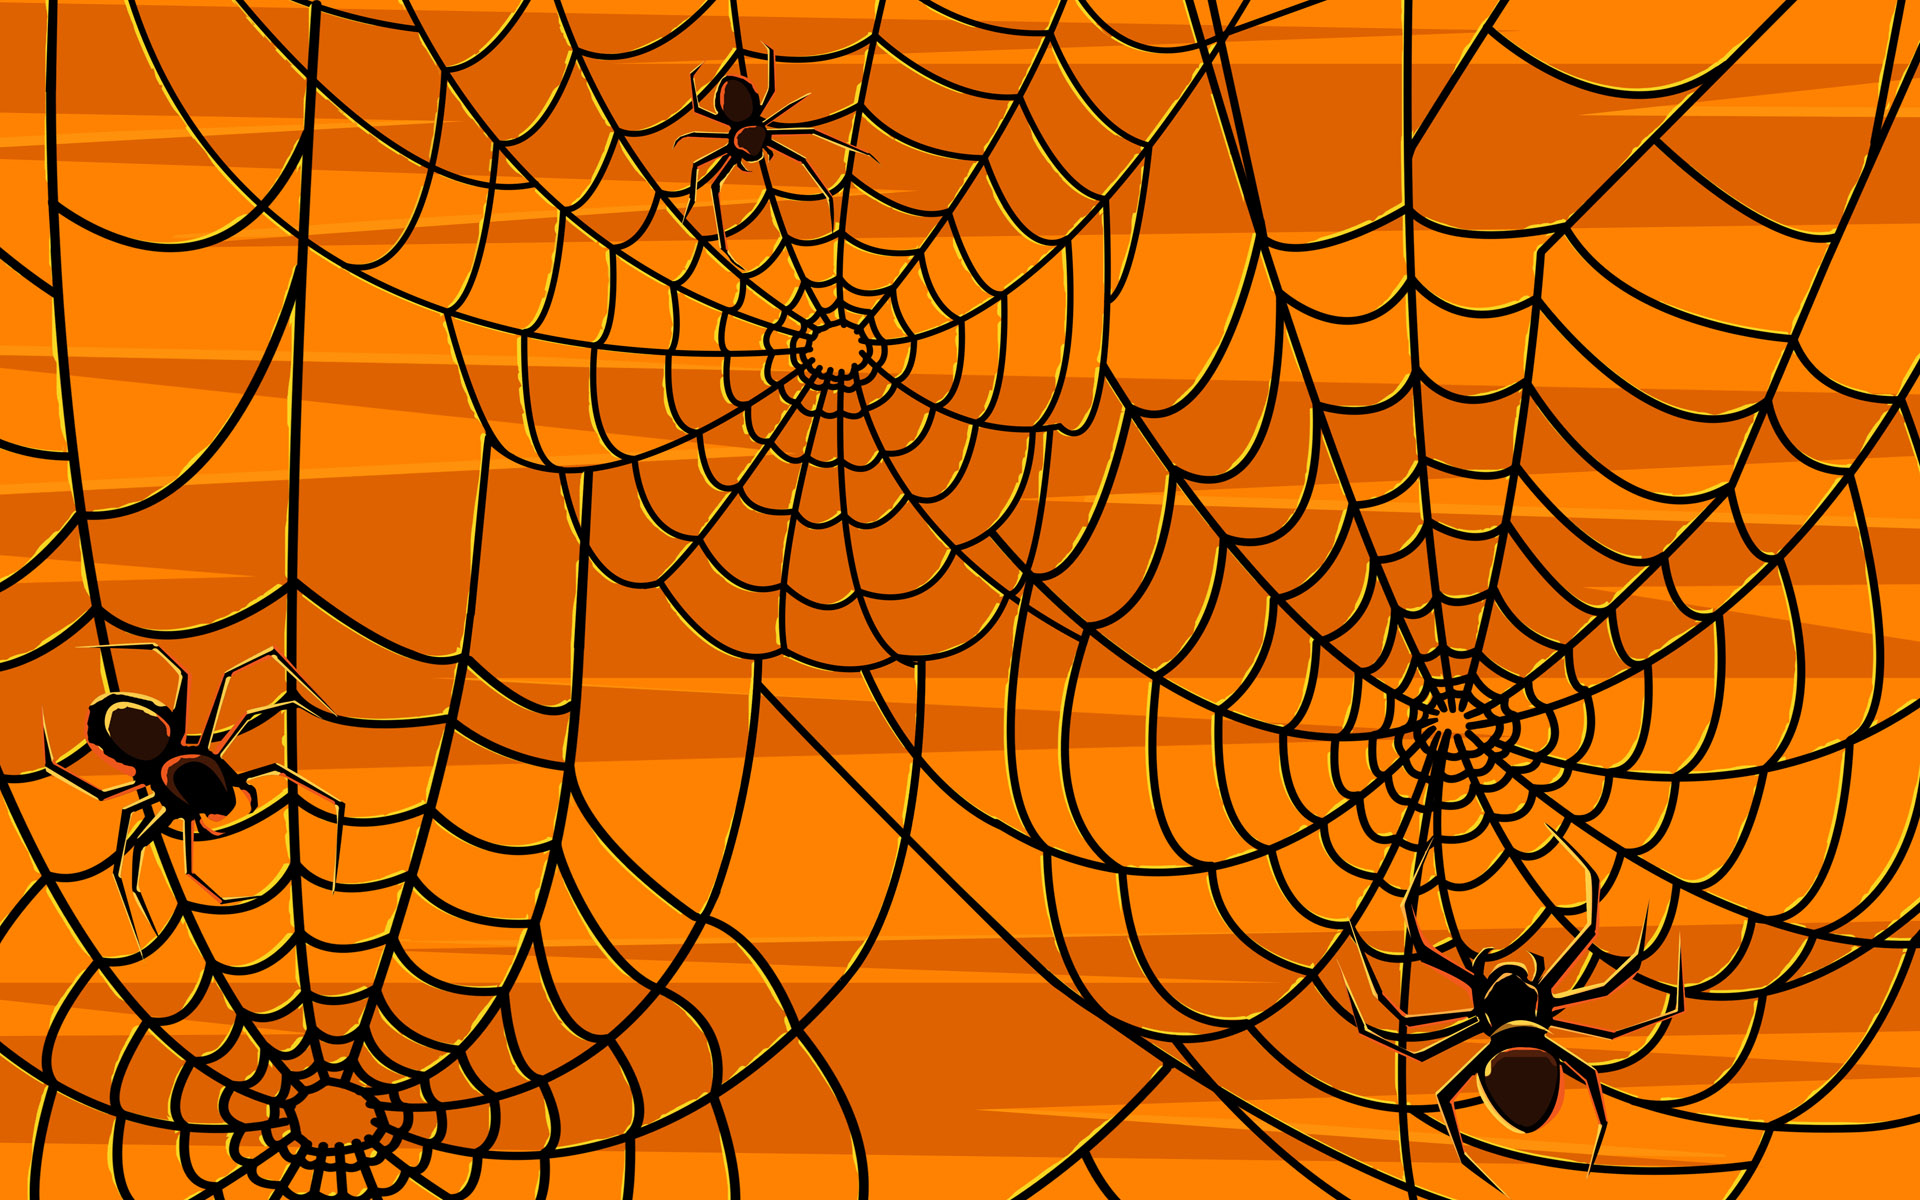 45 Scary Halloween 2012 HD Wallpapers Pumpkins Witches Spider Web 1920x1200